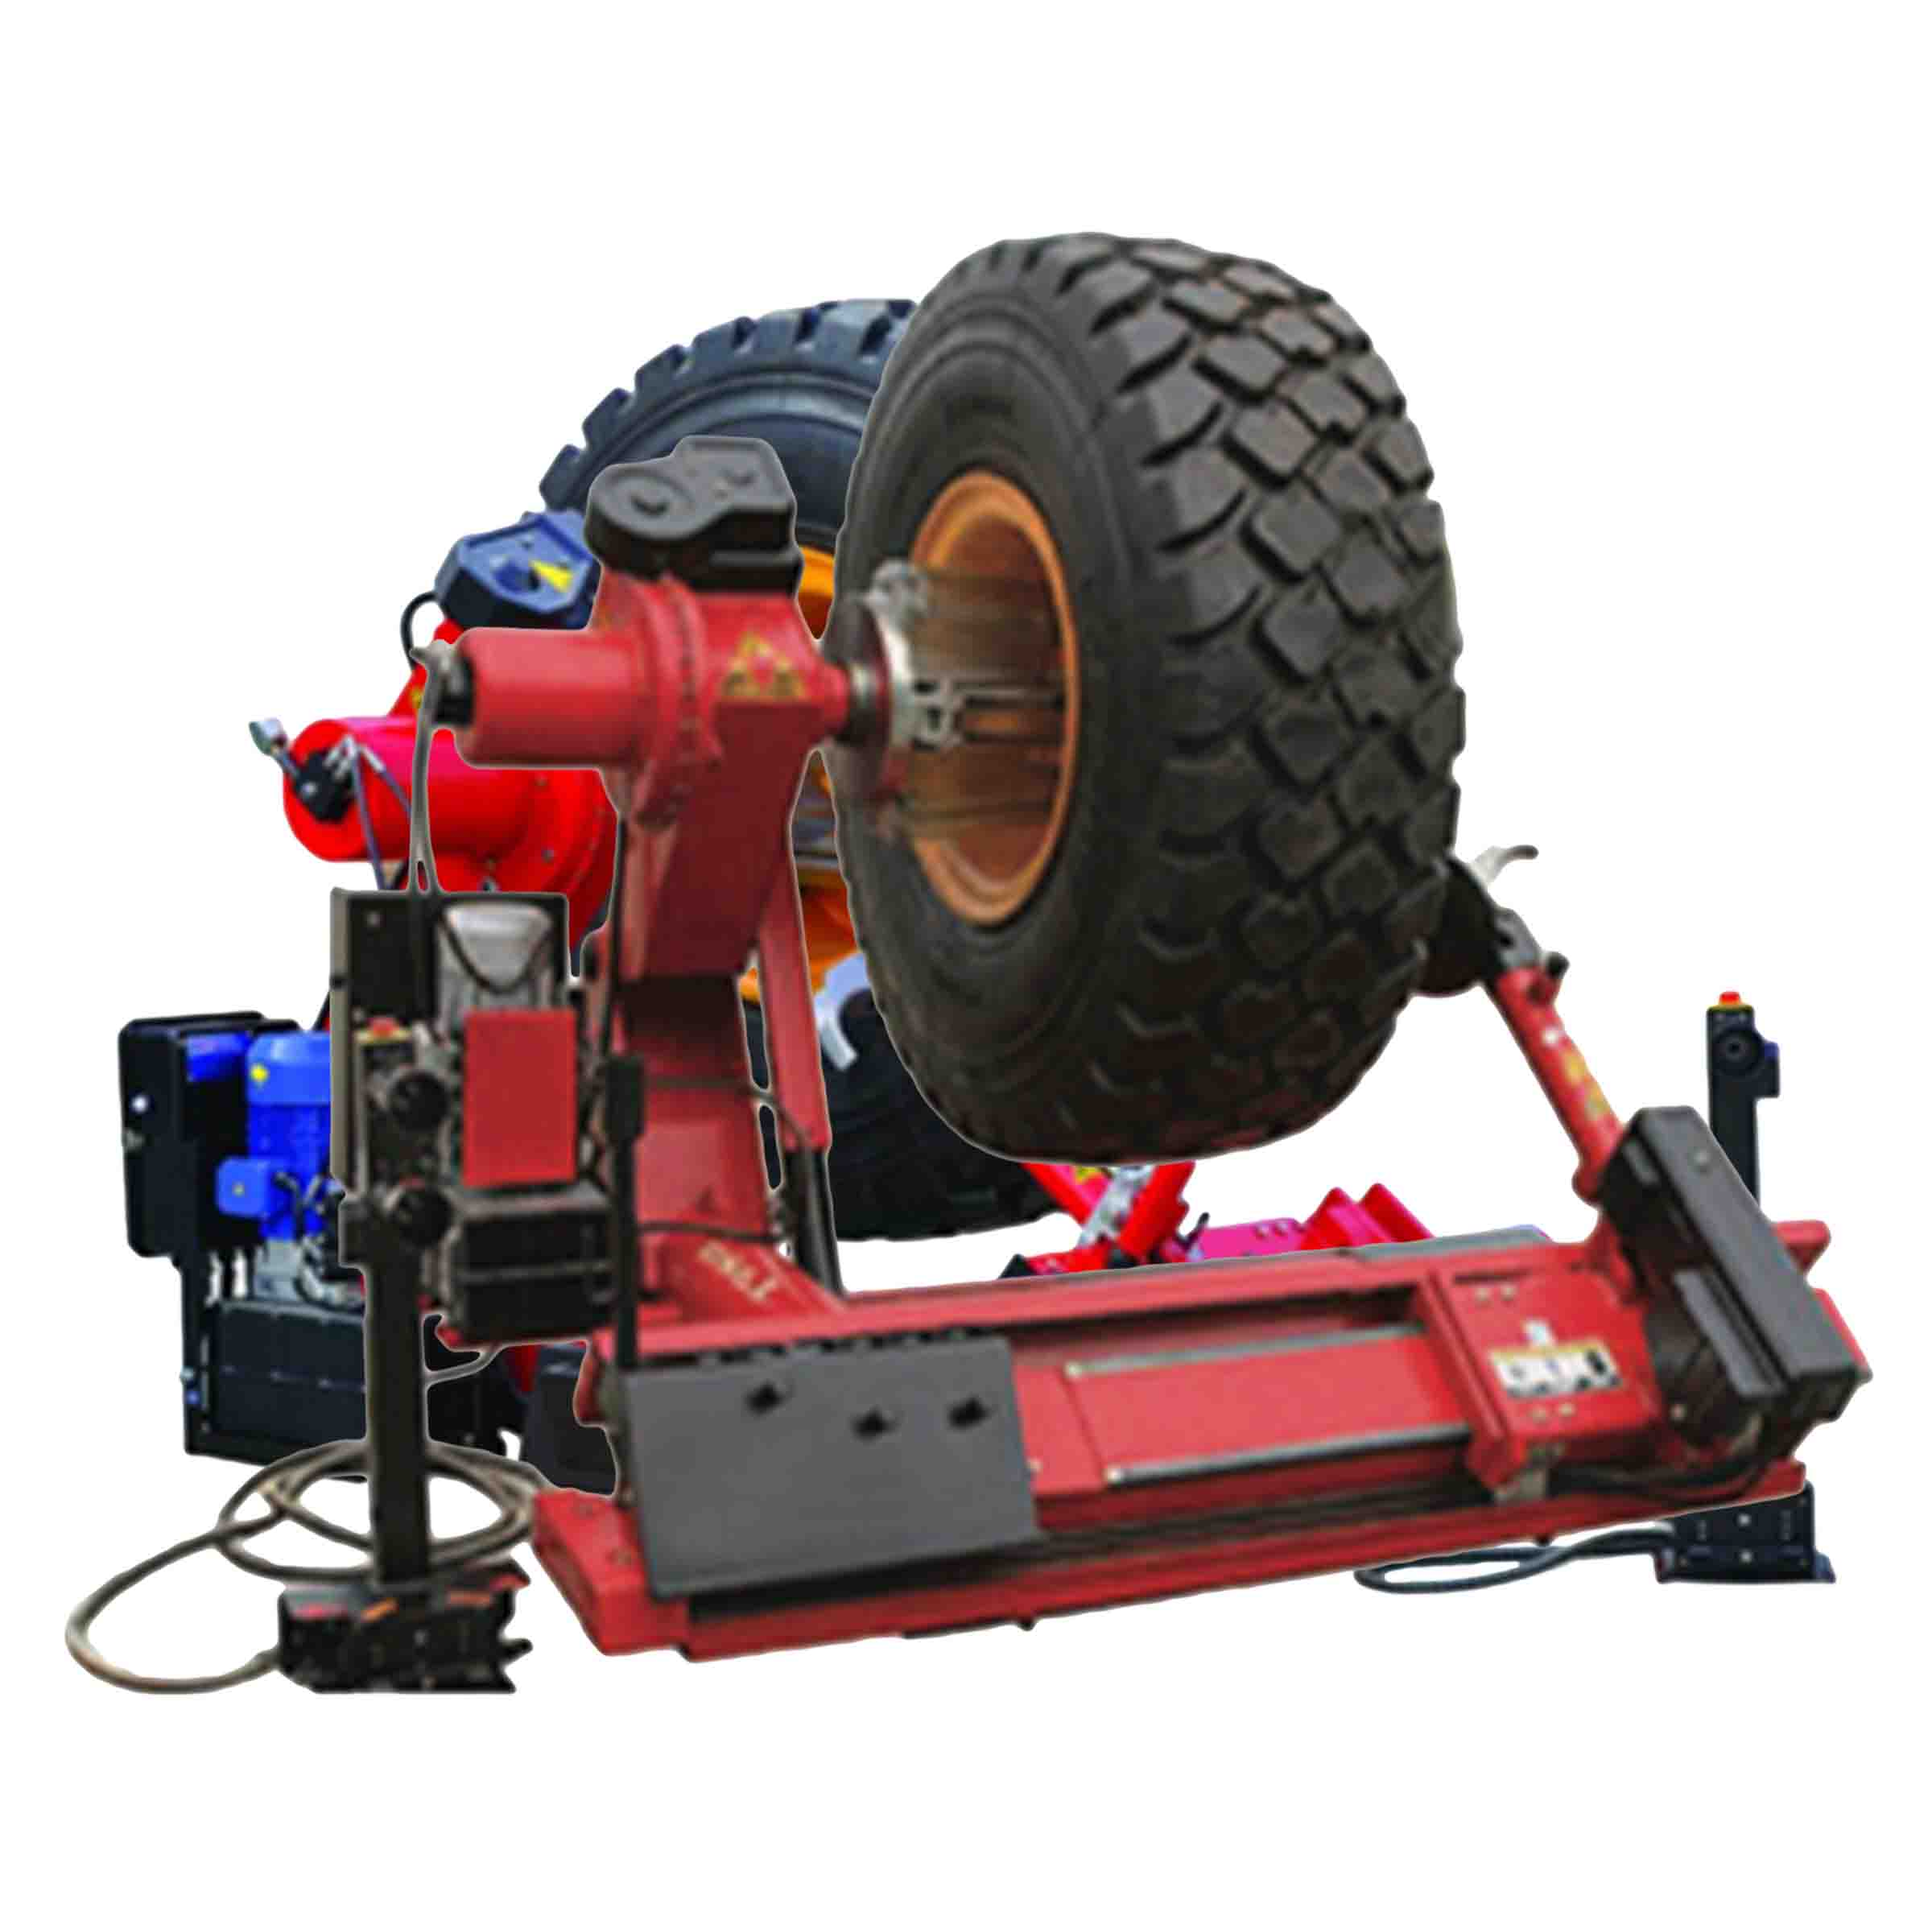 Big Red H/D TRE0980 3PH Tyre Changing Machine. Order Now!